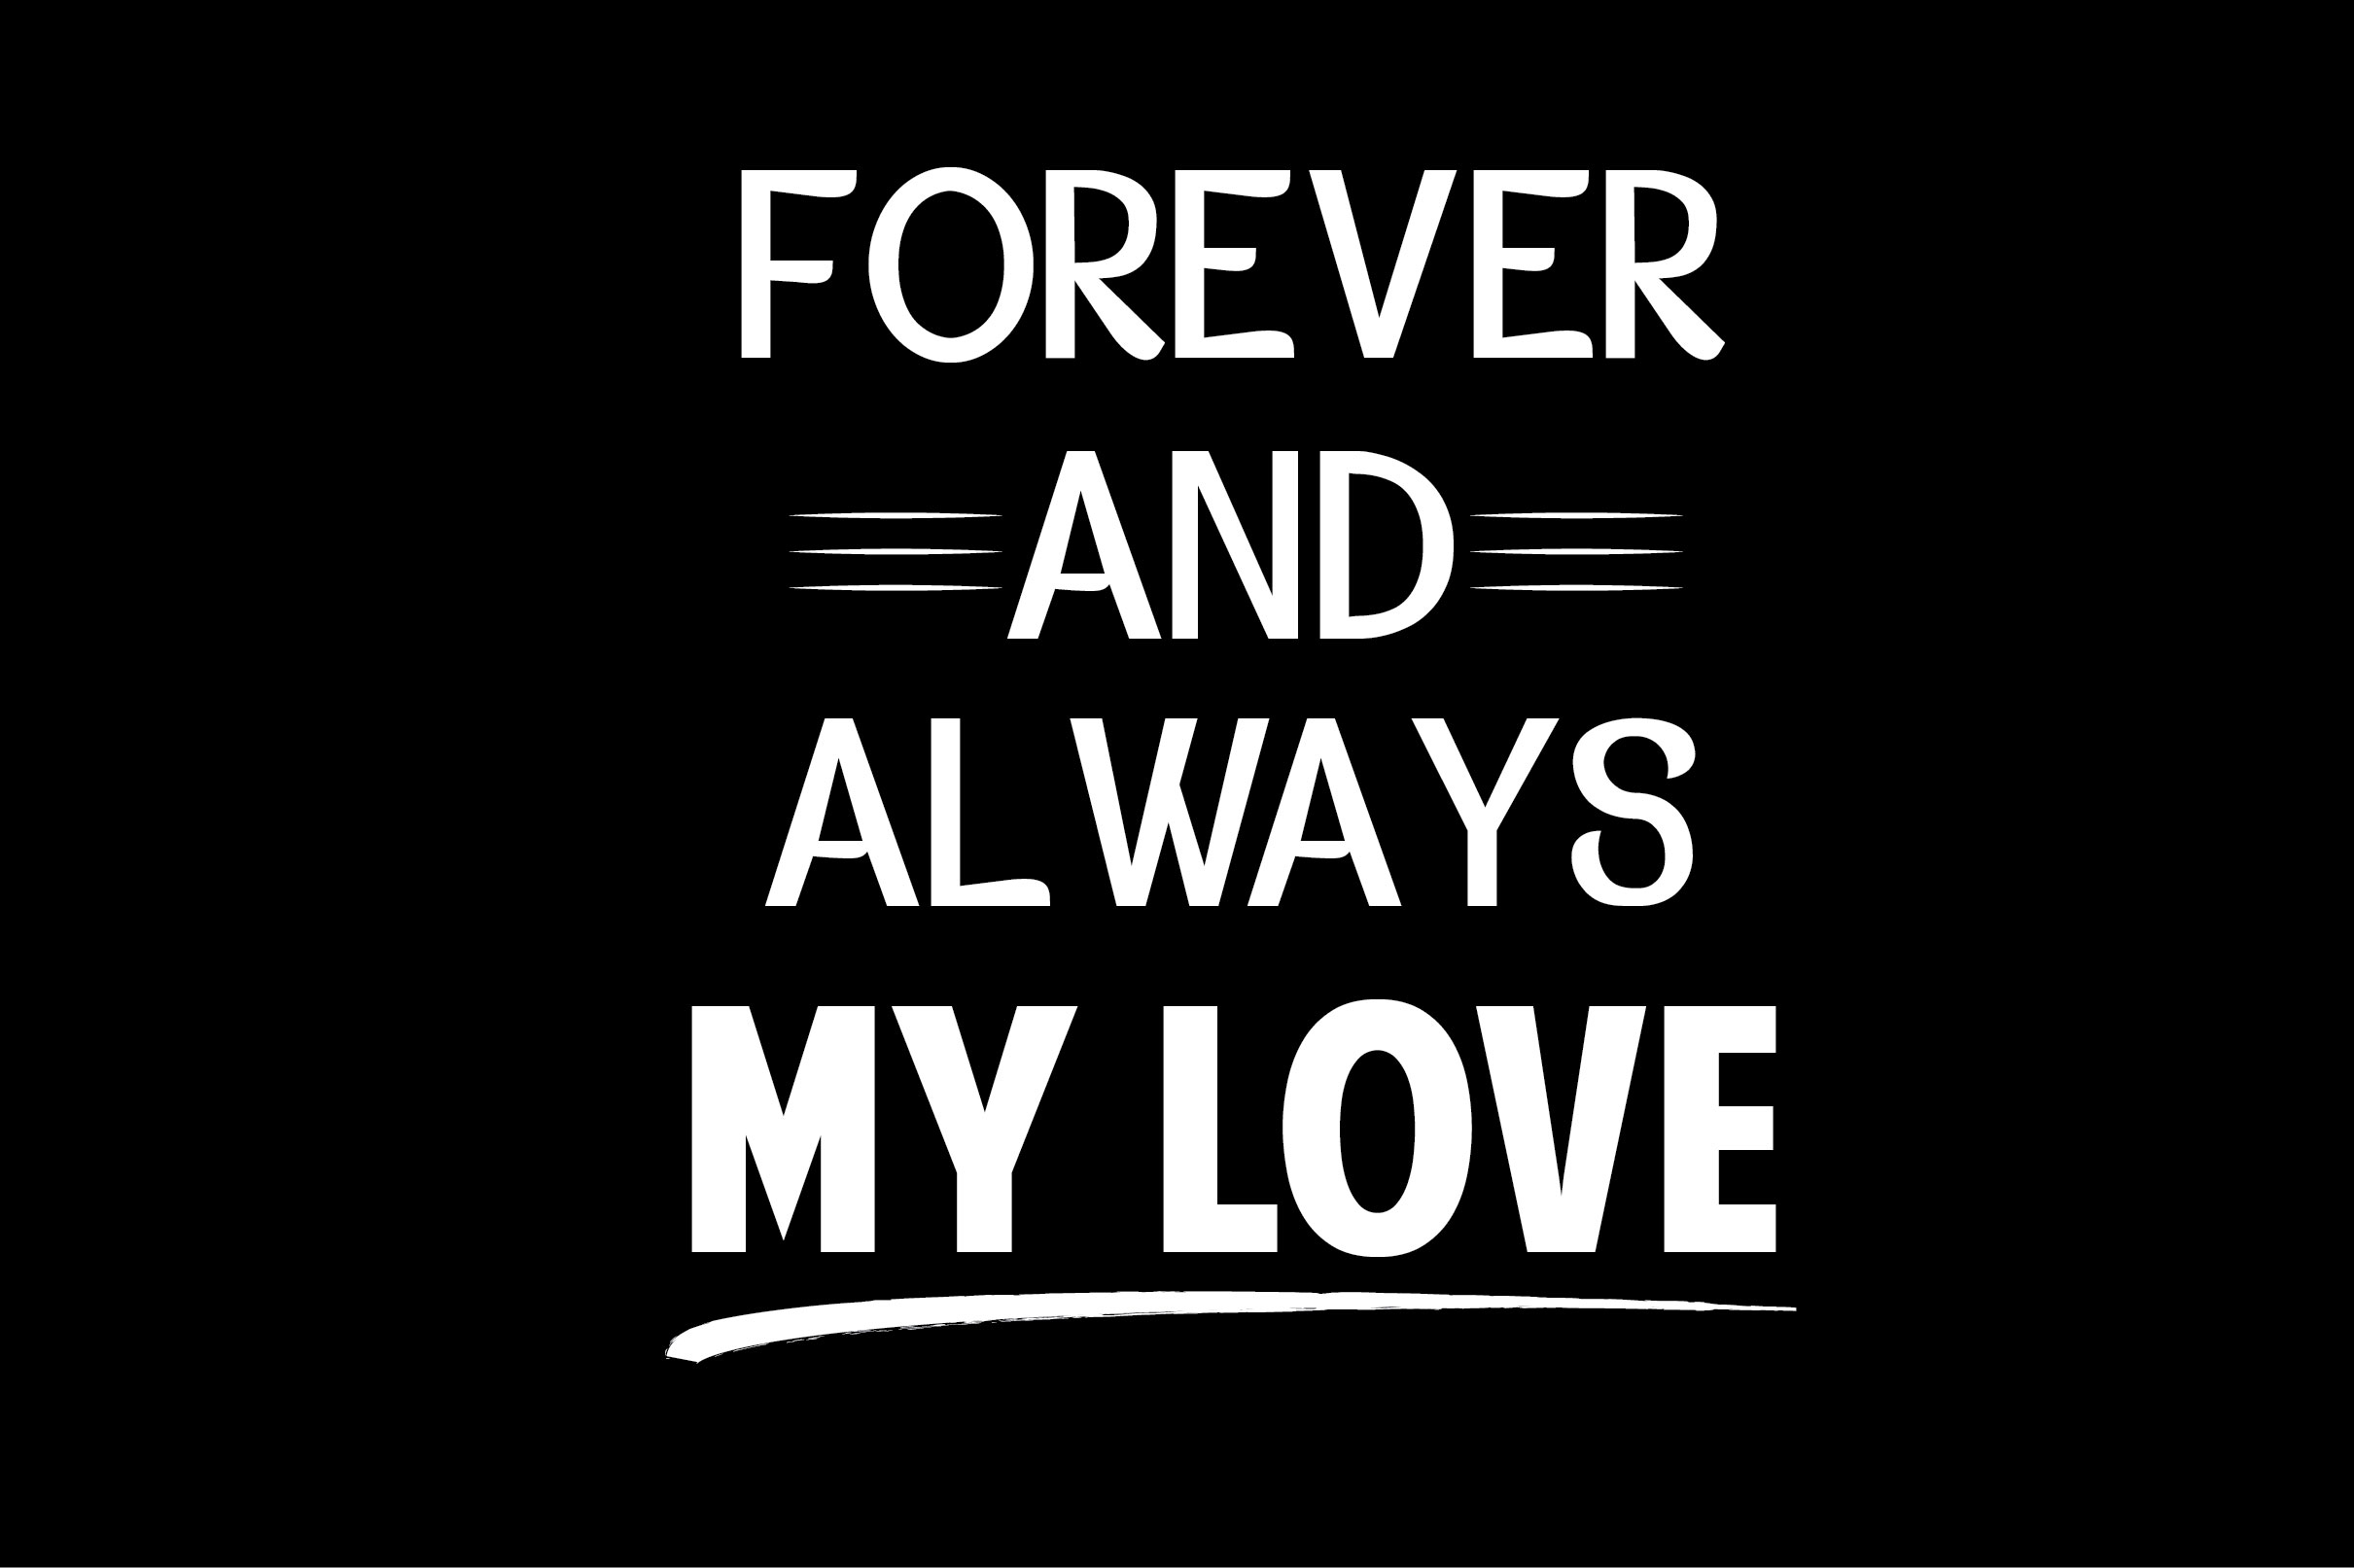 Download Free Forever And Always My Love Graphic By Shirtgraphic Creative for Cricut Explore, Silhouette and other cutting machines.